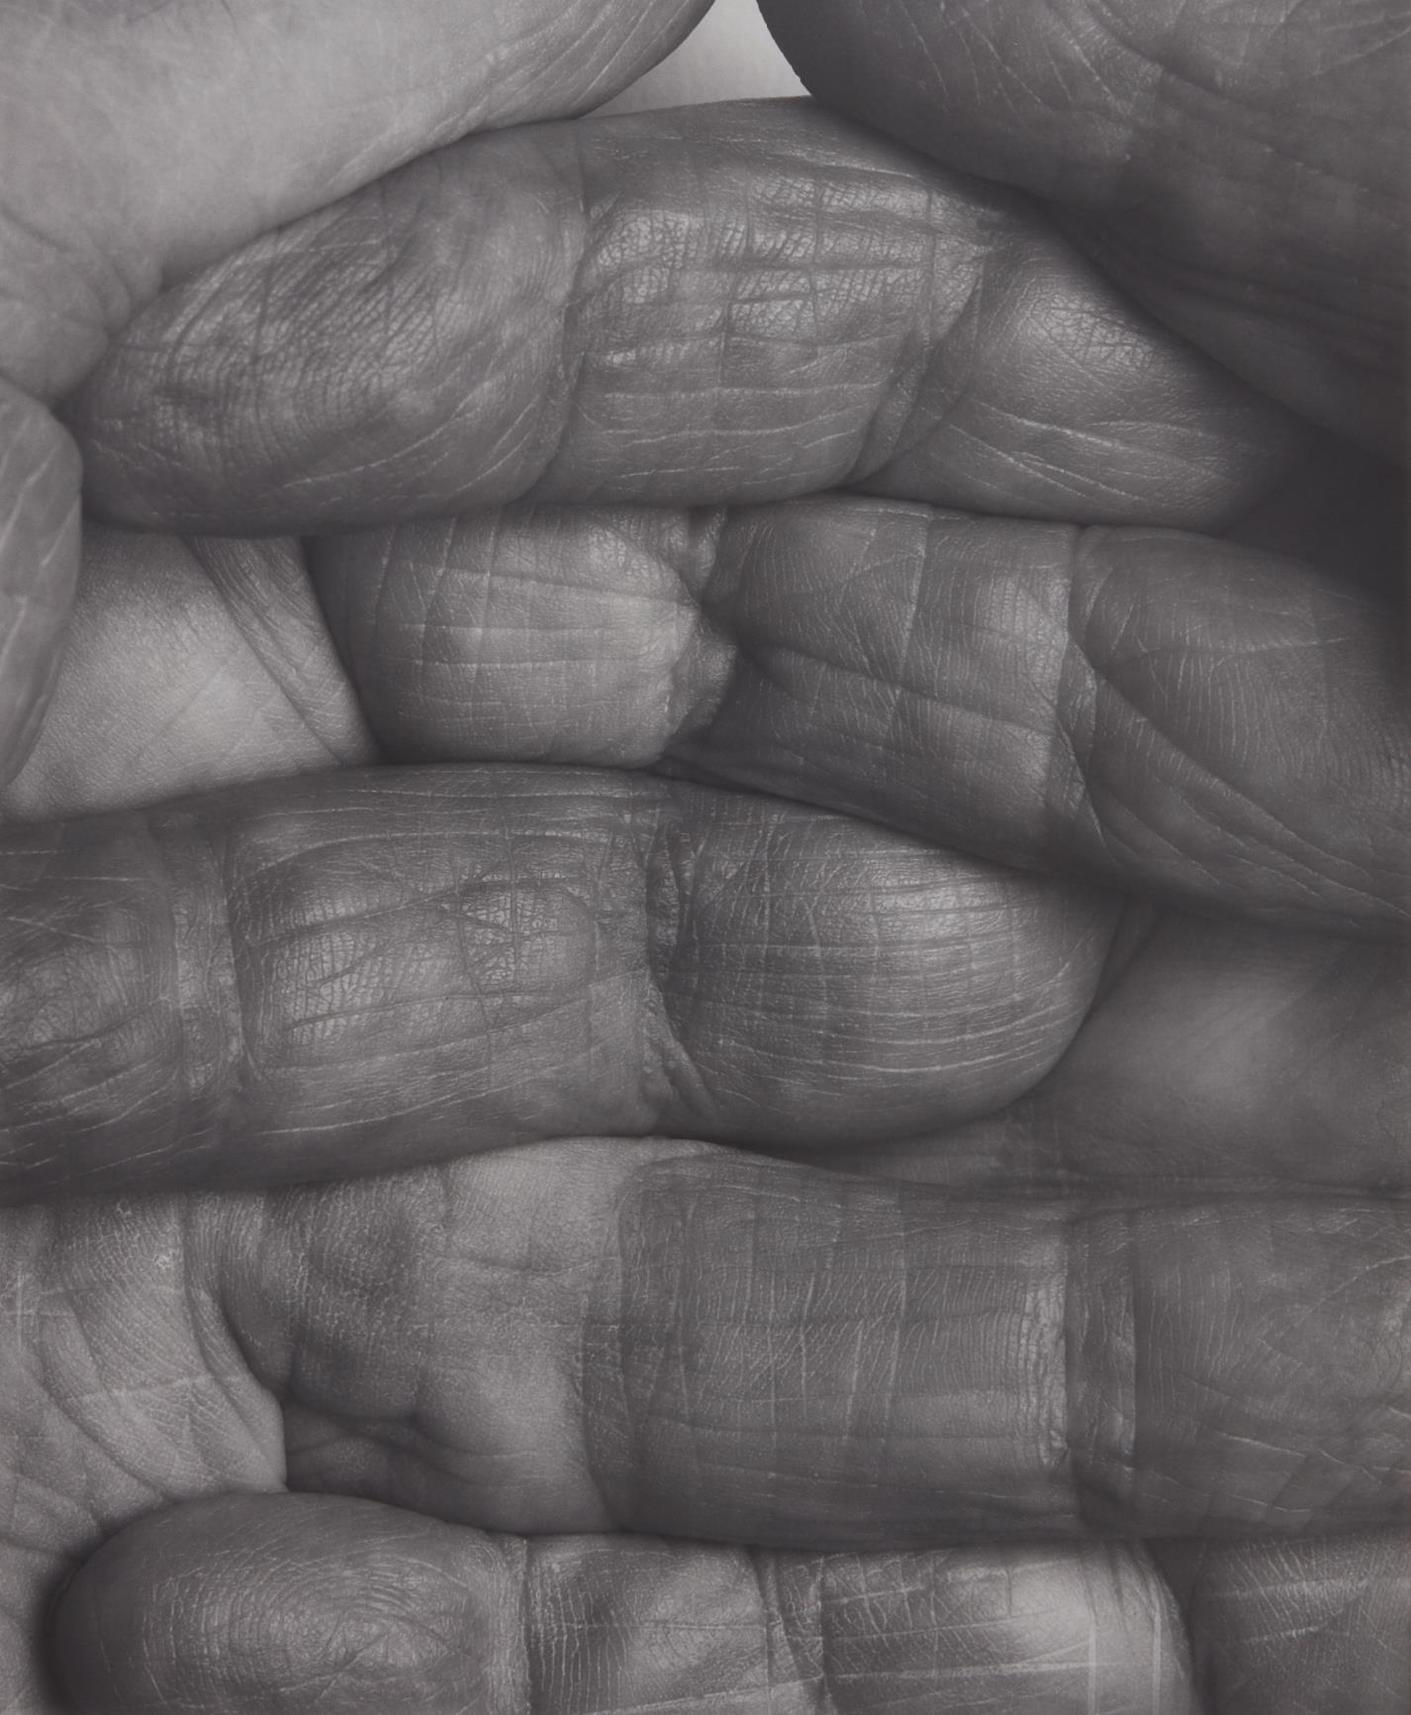 John Coplans-Self Portrait, Interlocking Fingers No. 1-1999